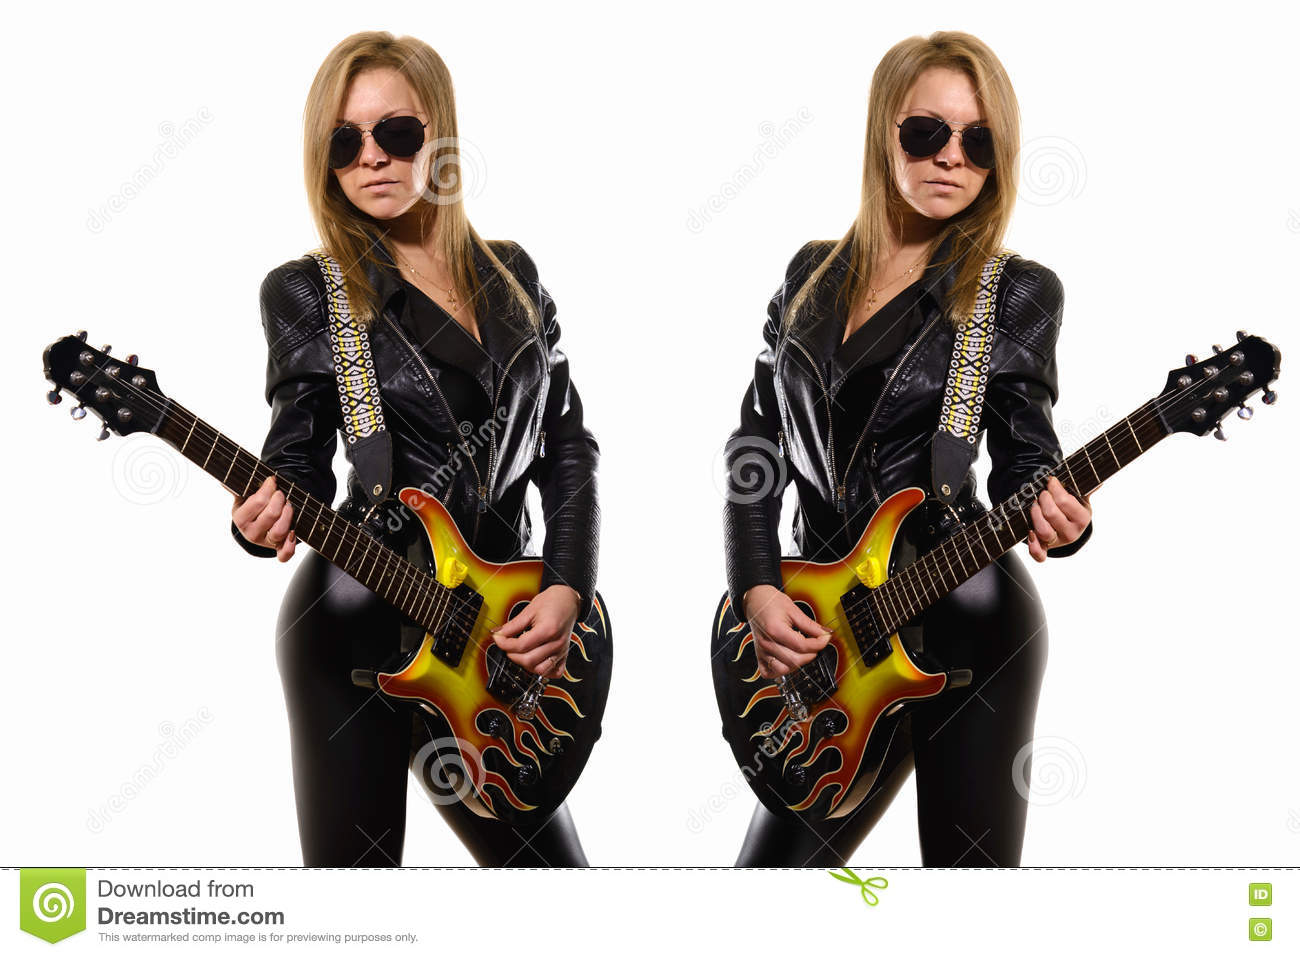 World Music Day. Two beautiful girls in leather jackets play the guitar.  Mirroring one young woman in sunglasses